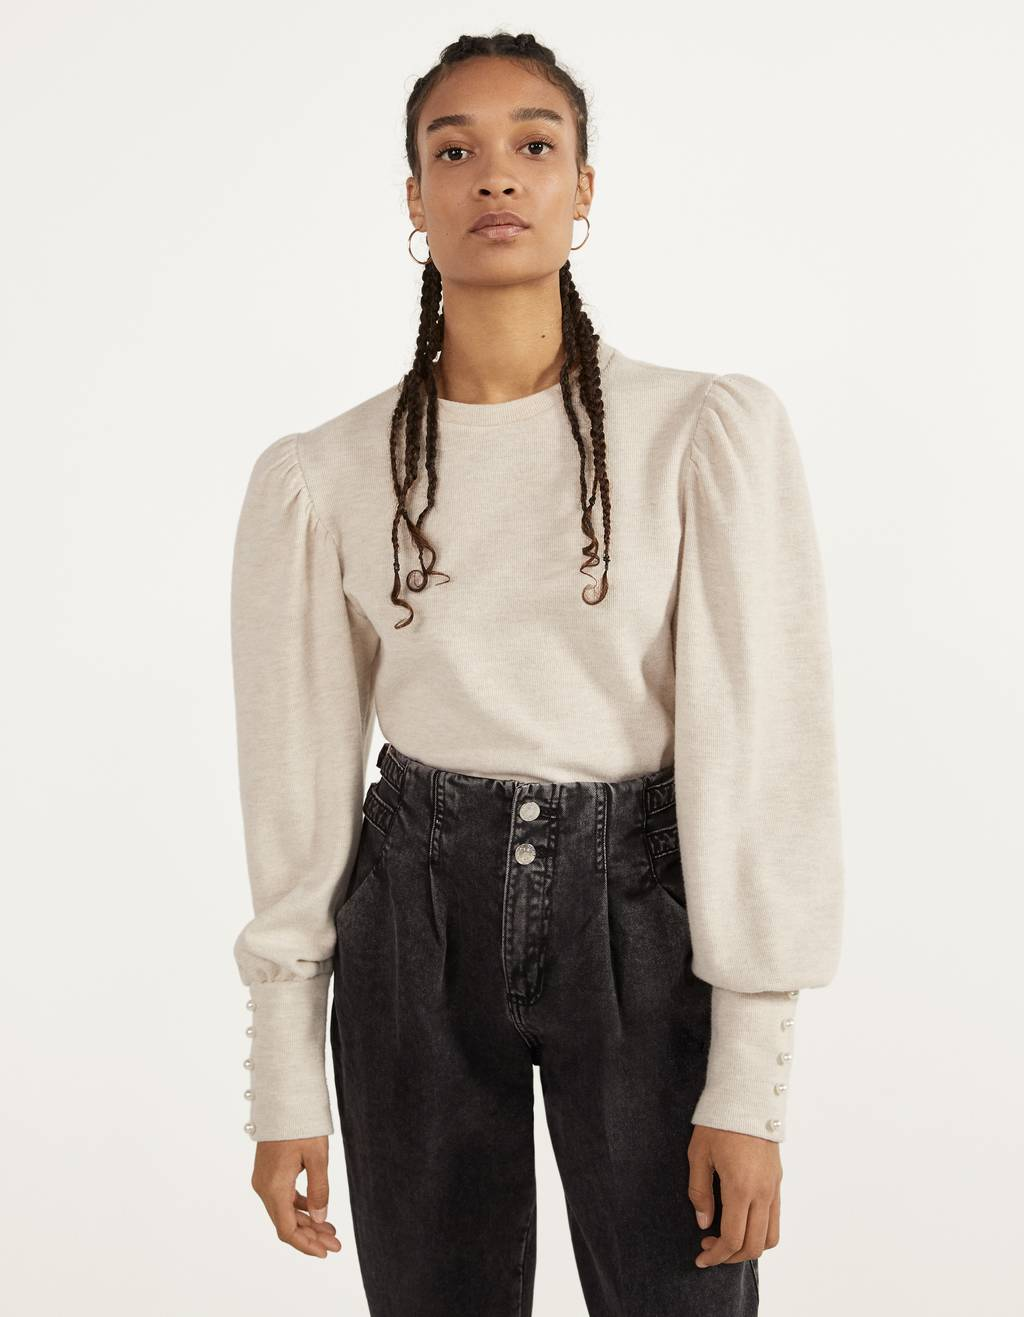 Puff sleeve sweater with pearl beads